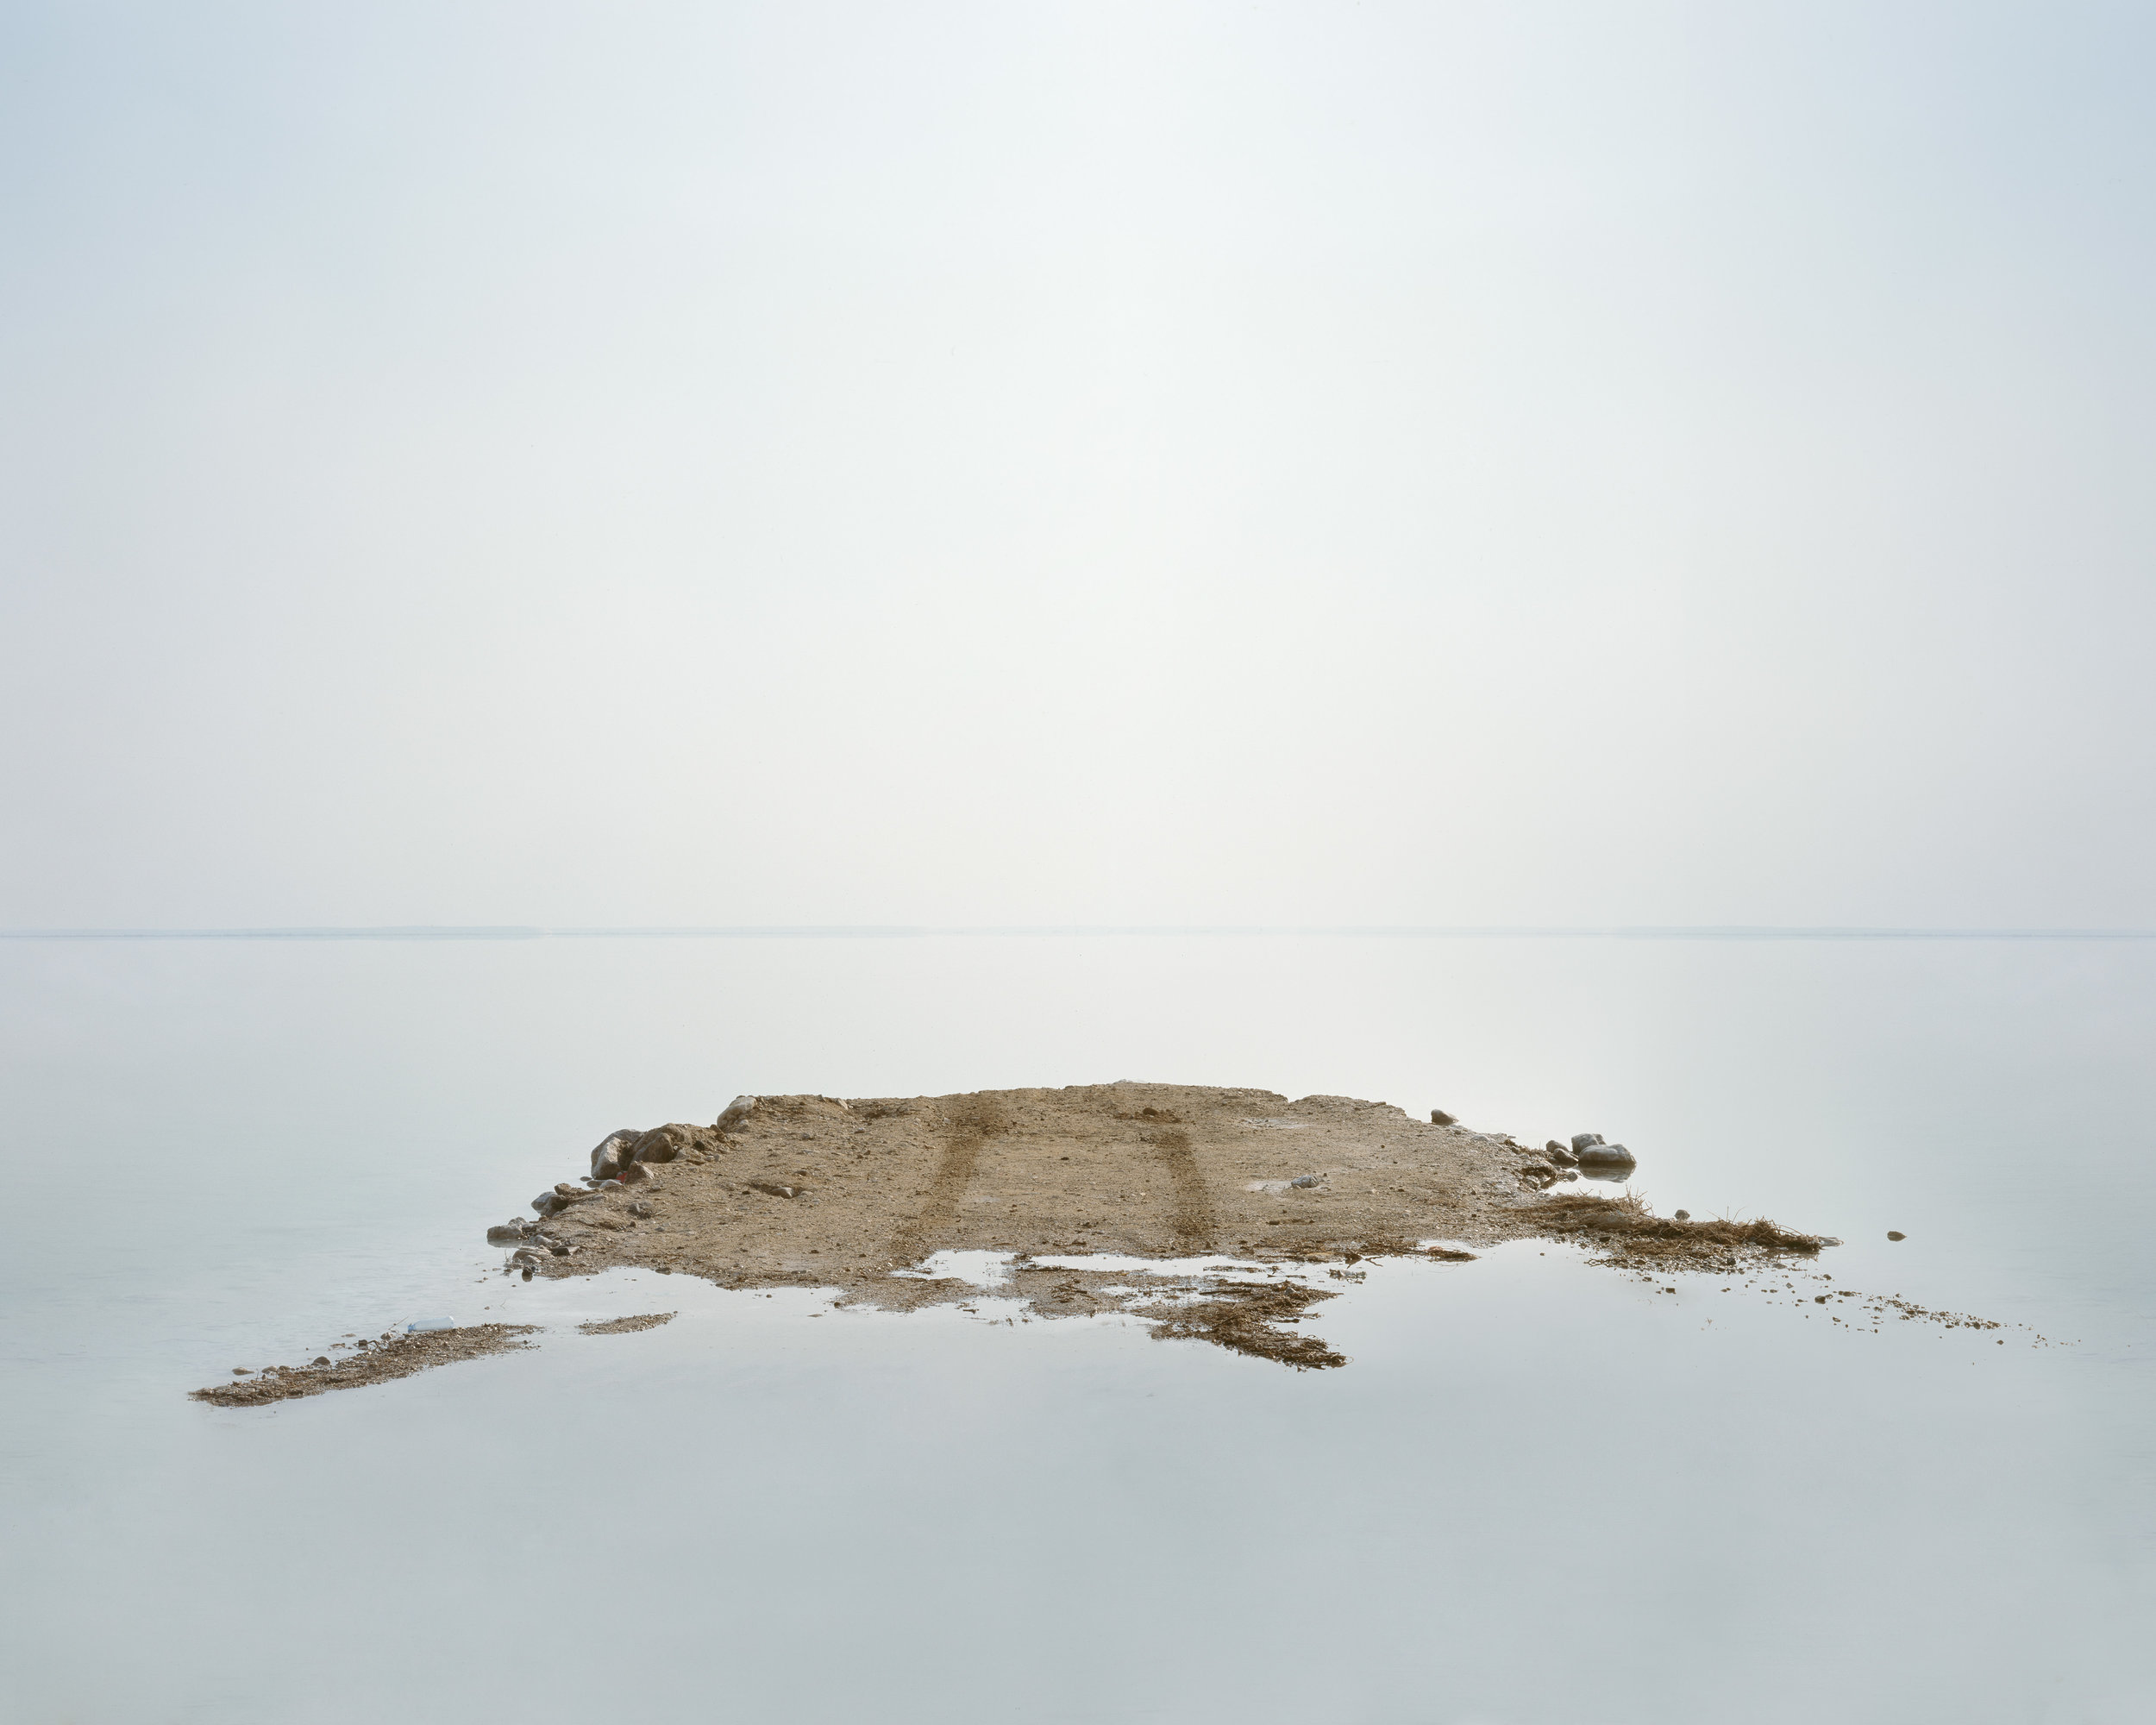 """""""The Dead Sea"""" , 2013 Archival pigment print, 16""""x20""""  Courtesy Yoav Friedlander & Carrie Able Gallery"""